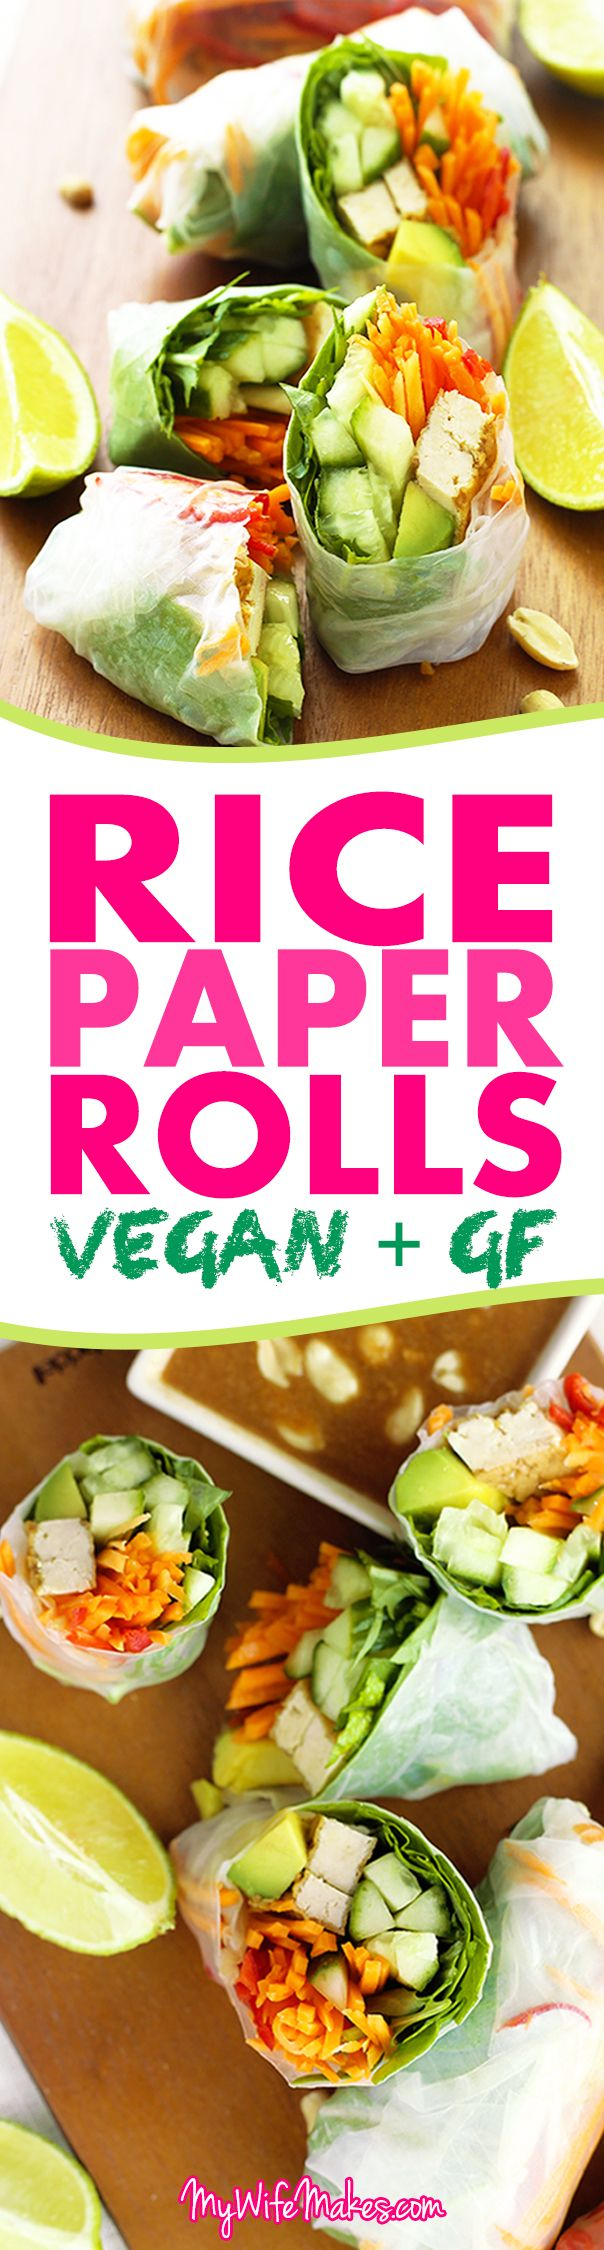 Vegan Rice Paper Rolls with Hoisin Peanut Dipping Sauce - Filled with avocado, carrots, cucumbers, chillies, and other healthy ingredients.